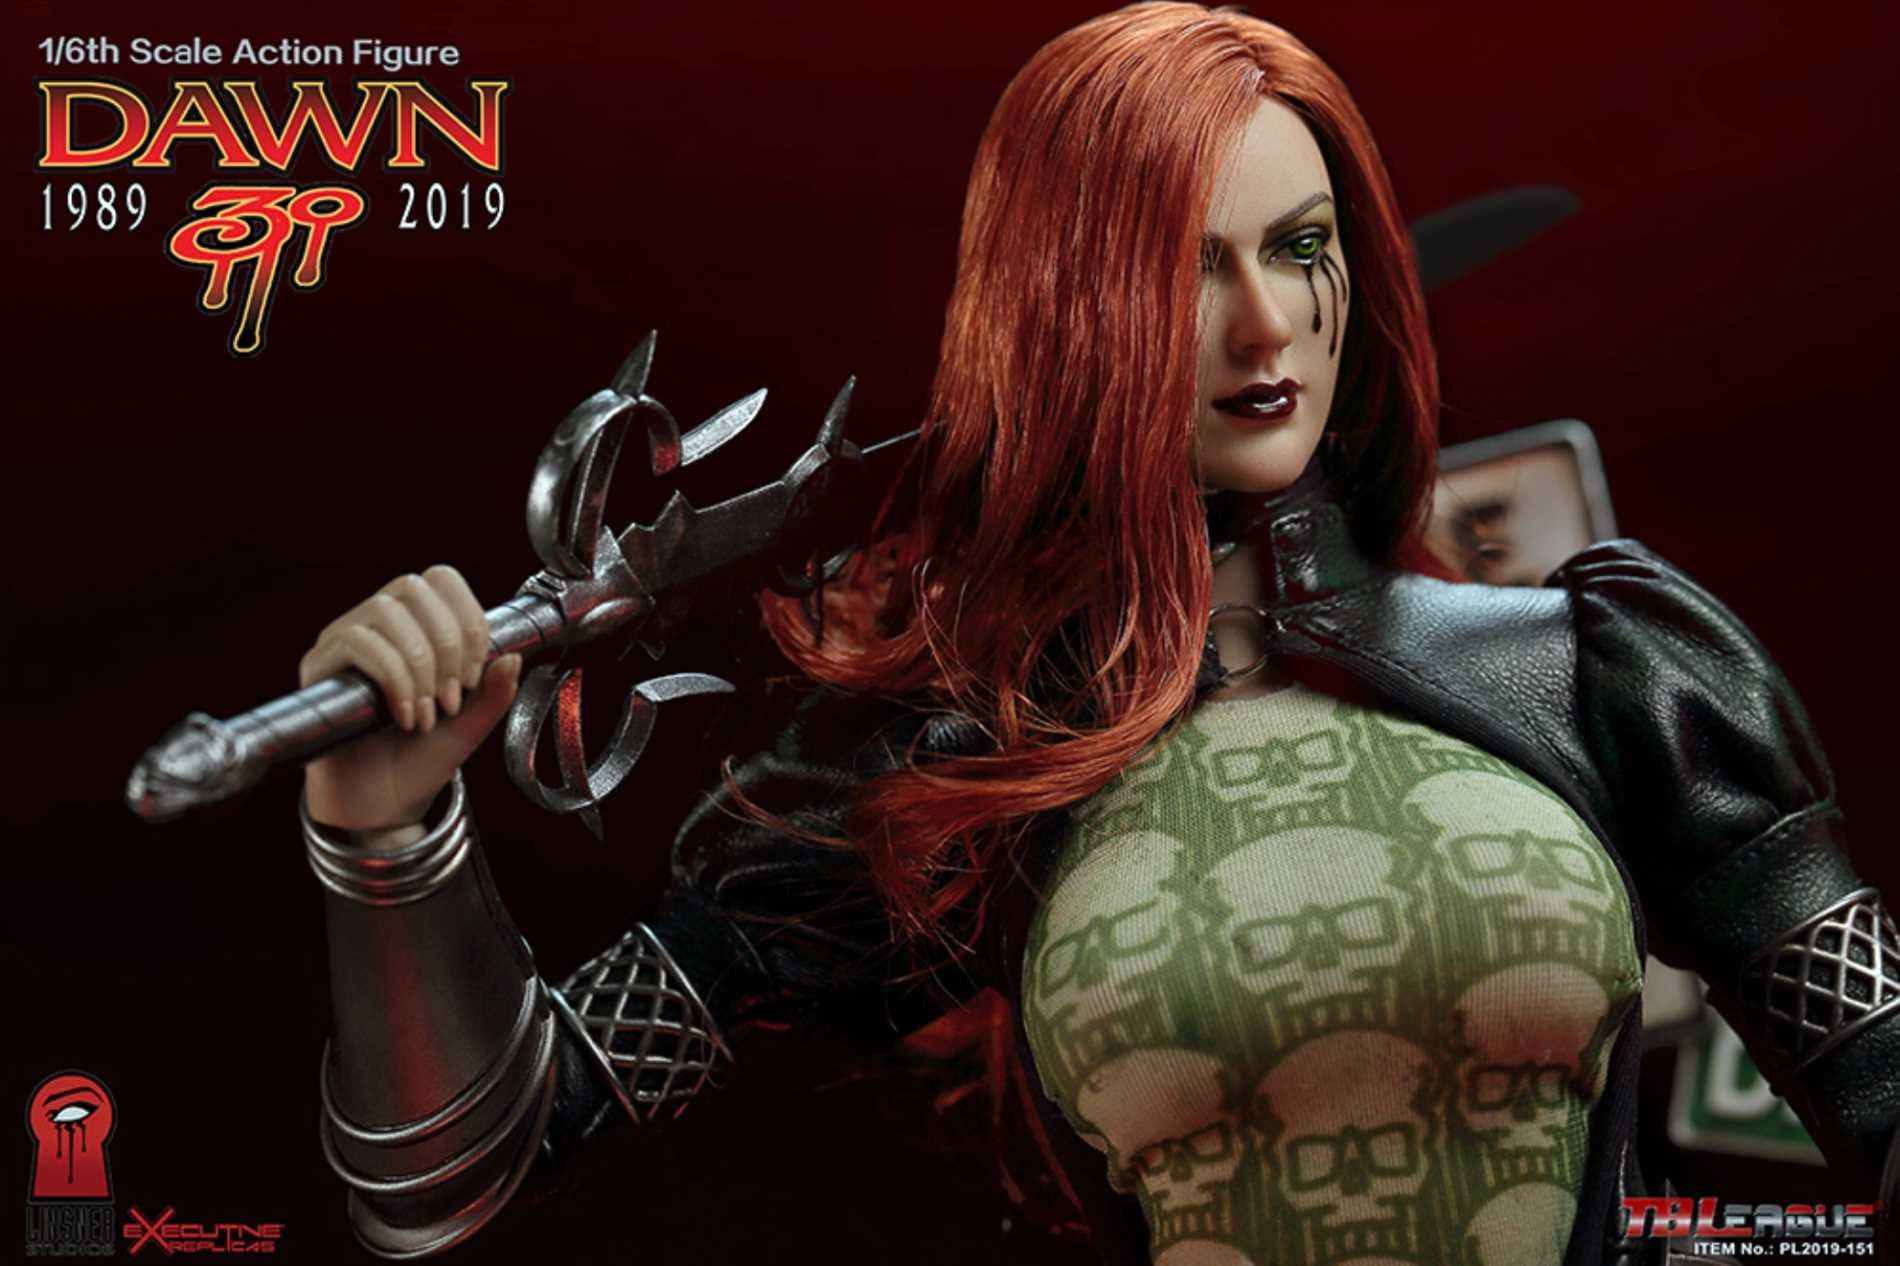 Dawn Shows Her Power as the Next Figure from Executive Replicas